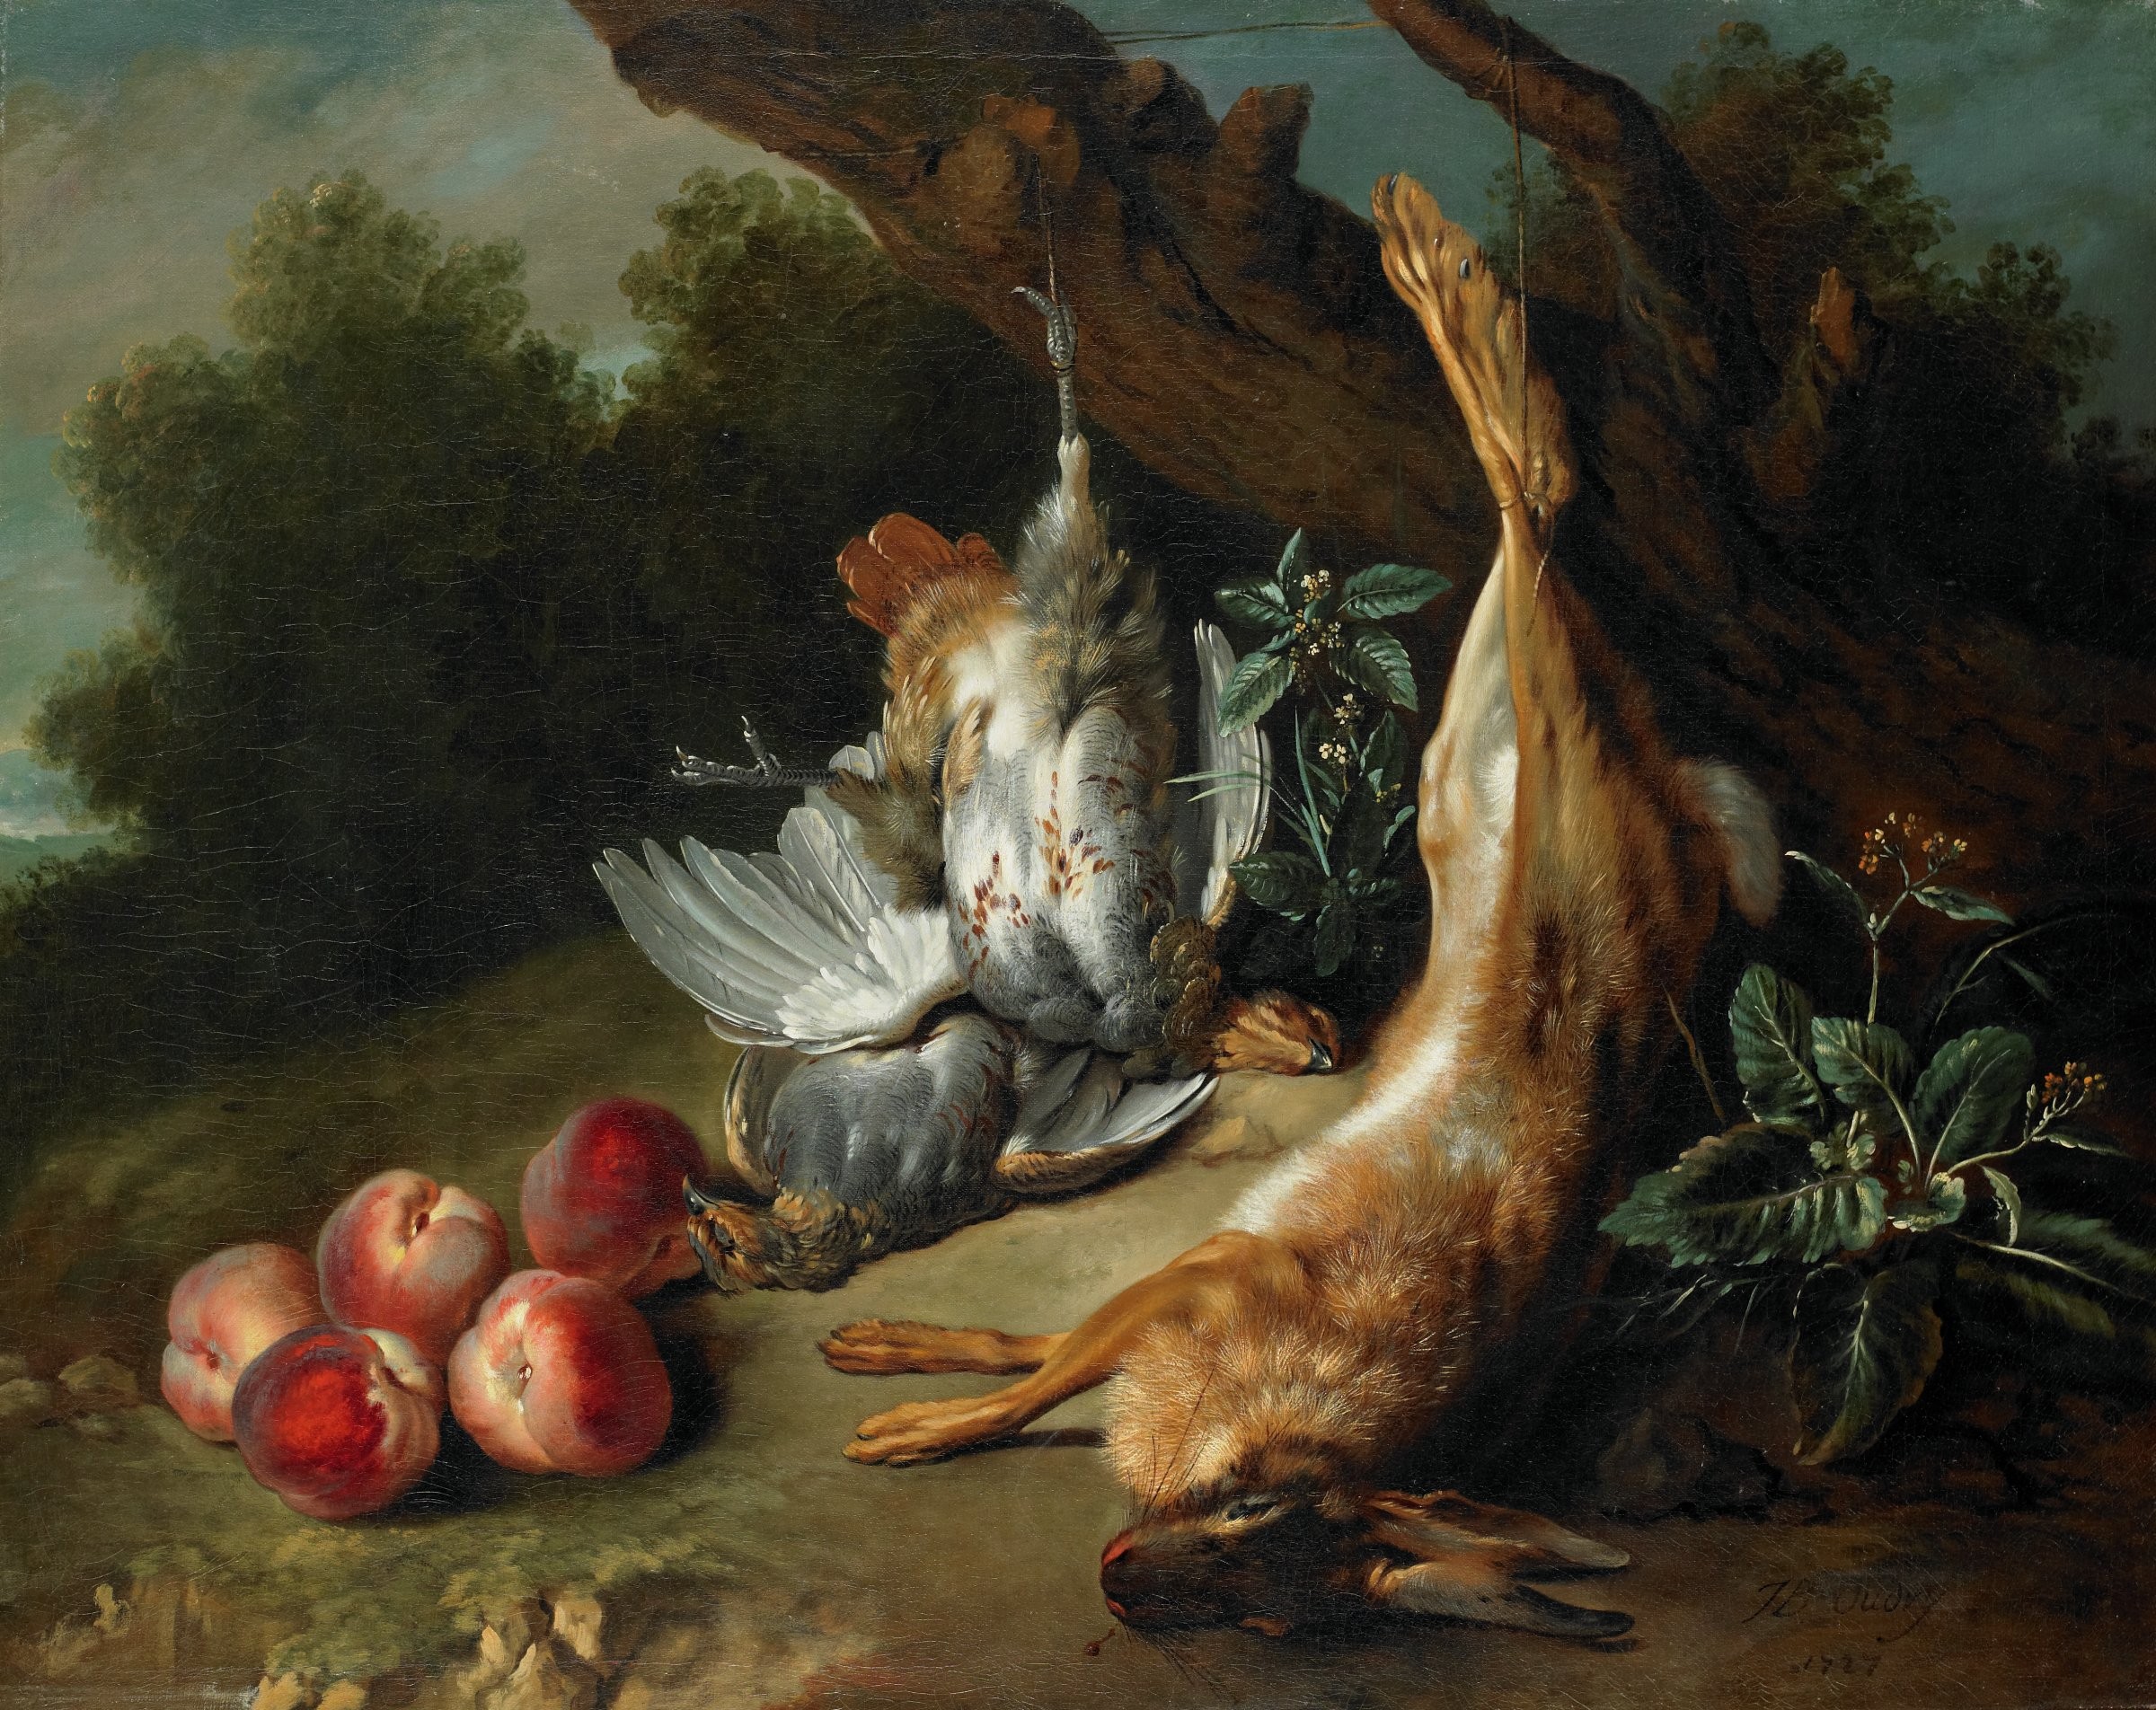 In a landscape setting, in the center of the composition a dead hare and partridge lay on the ground, suspended by their feet from the low limbs of a tree. A second dead partridge lies beneath the first. Five ripe peaches rest on the ground in the lower left corner.